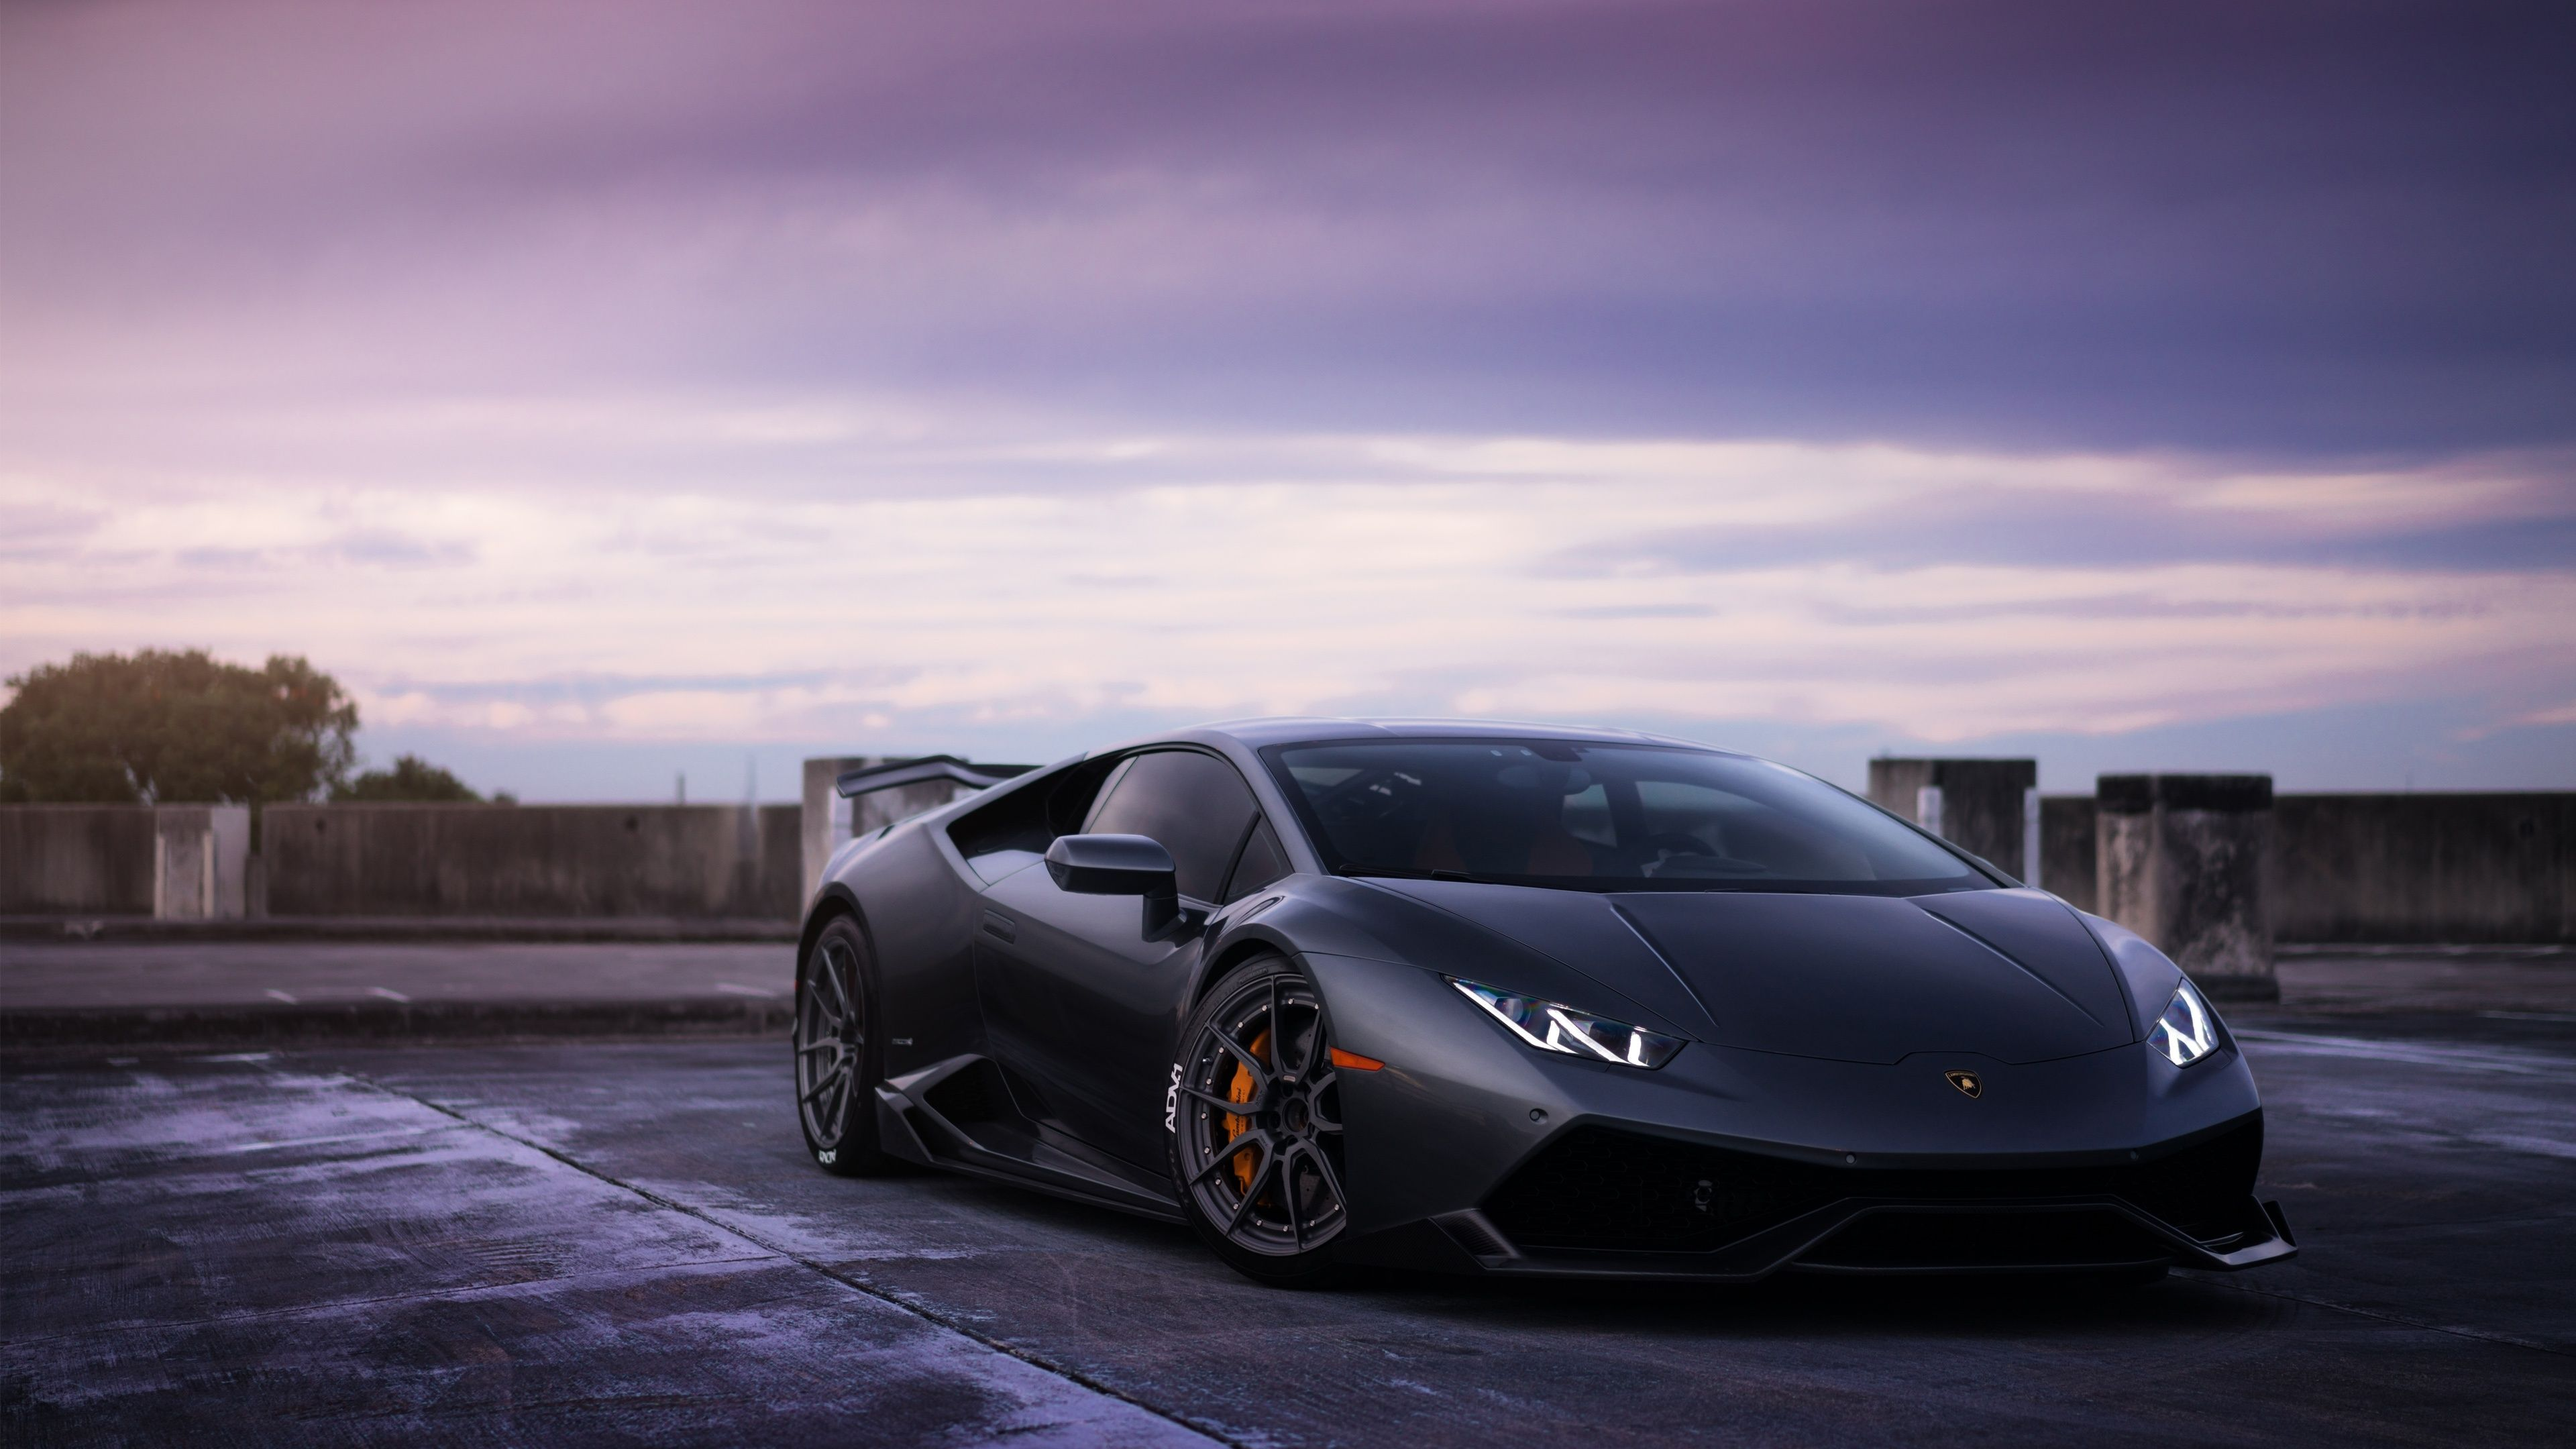 Lamborghini Huracan Wallpapers Images Car Wallpapers Lamborghini Huracan Blue Lamborghini